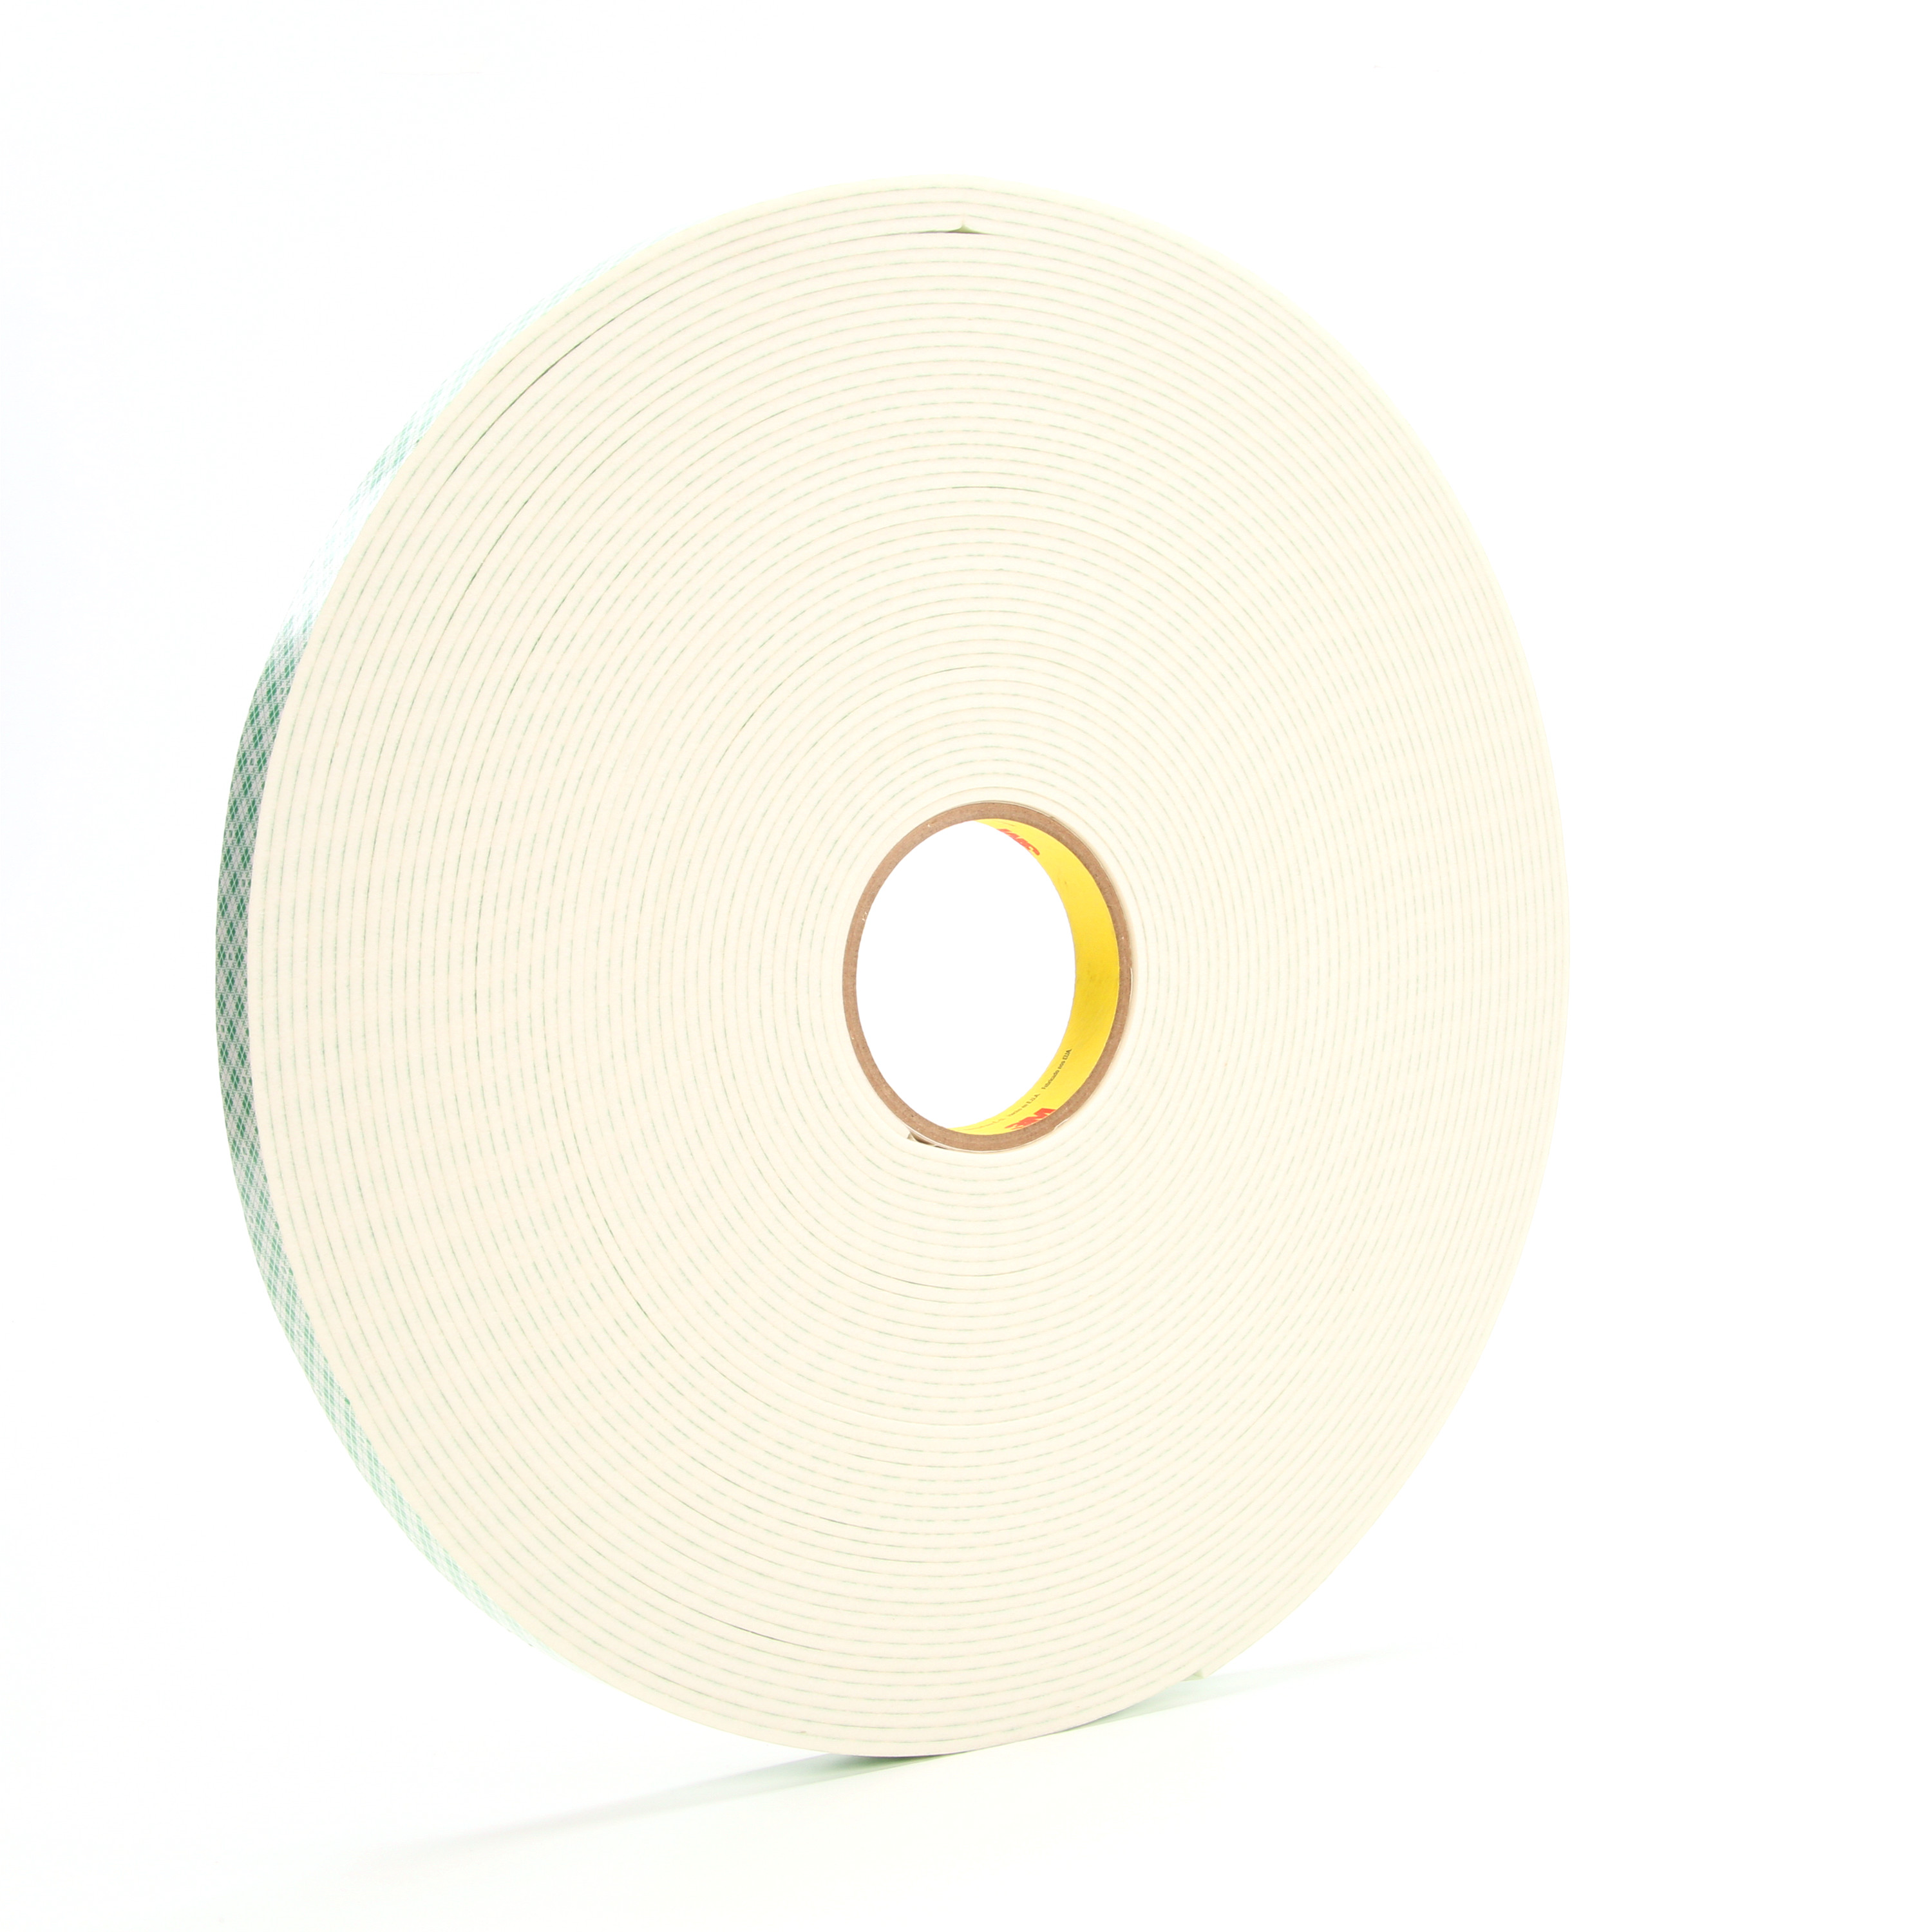 3M™ Double Coated Urethane Foam Tape 4008, Off White, 3/4 in x 36 yd, 125 mil, 12 rolls per case